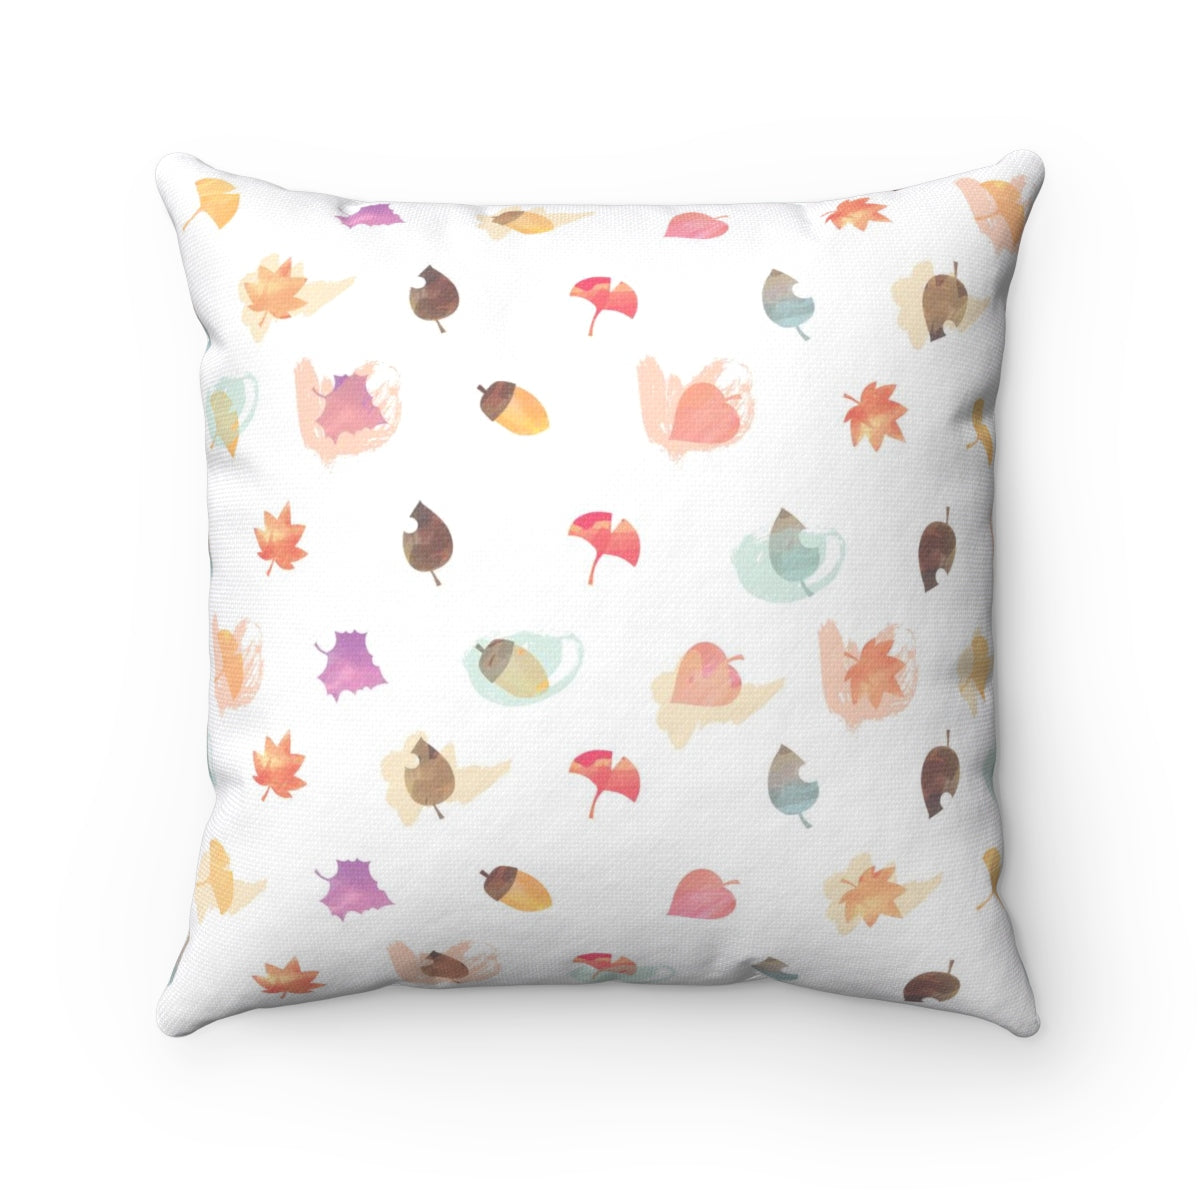 It's Fall Ya'll Yellow Spun Polyester Square Pillow